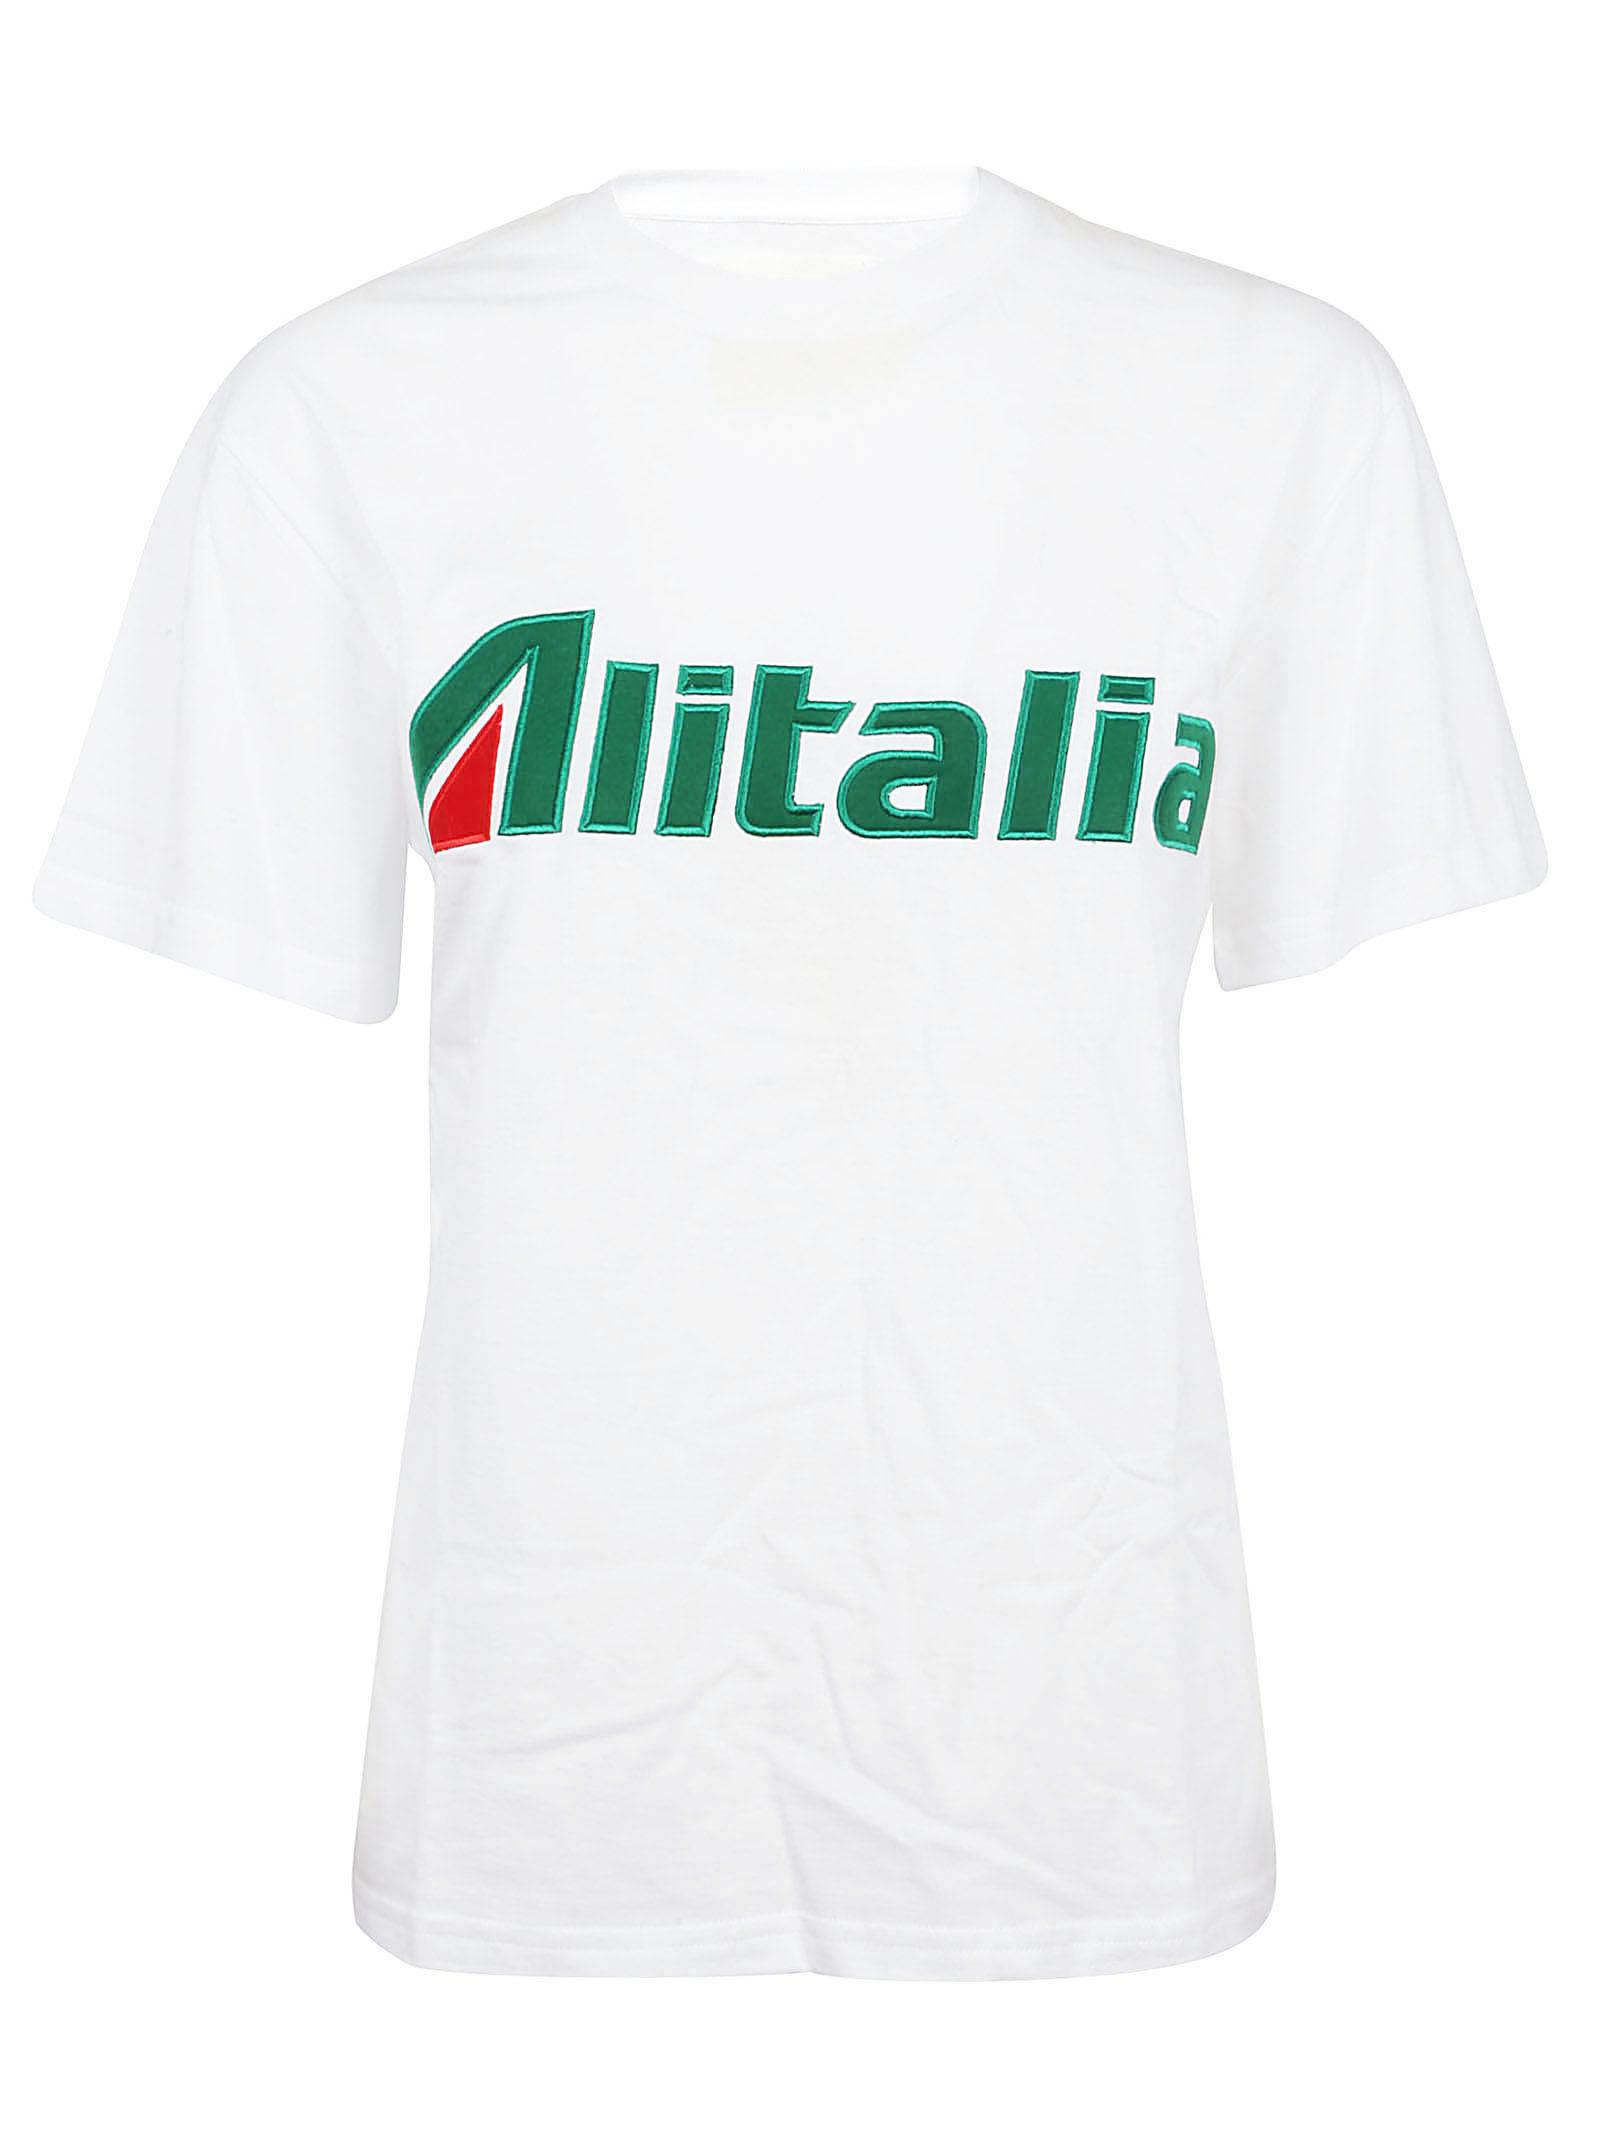 Alitalia patch T-shirt - White Alberta Ferretti Clearance Excellent Limited Edition For Sale Get Authentic Cheap Price Discount Footlocker Finishline 1vc9SIcx